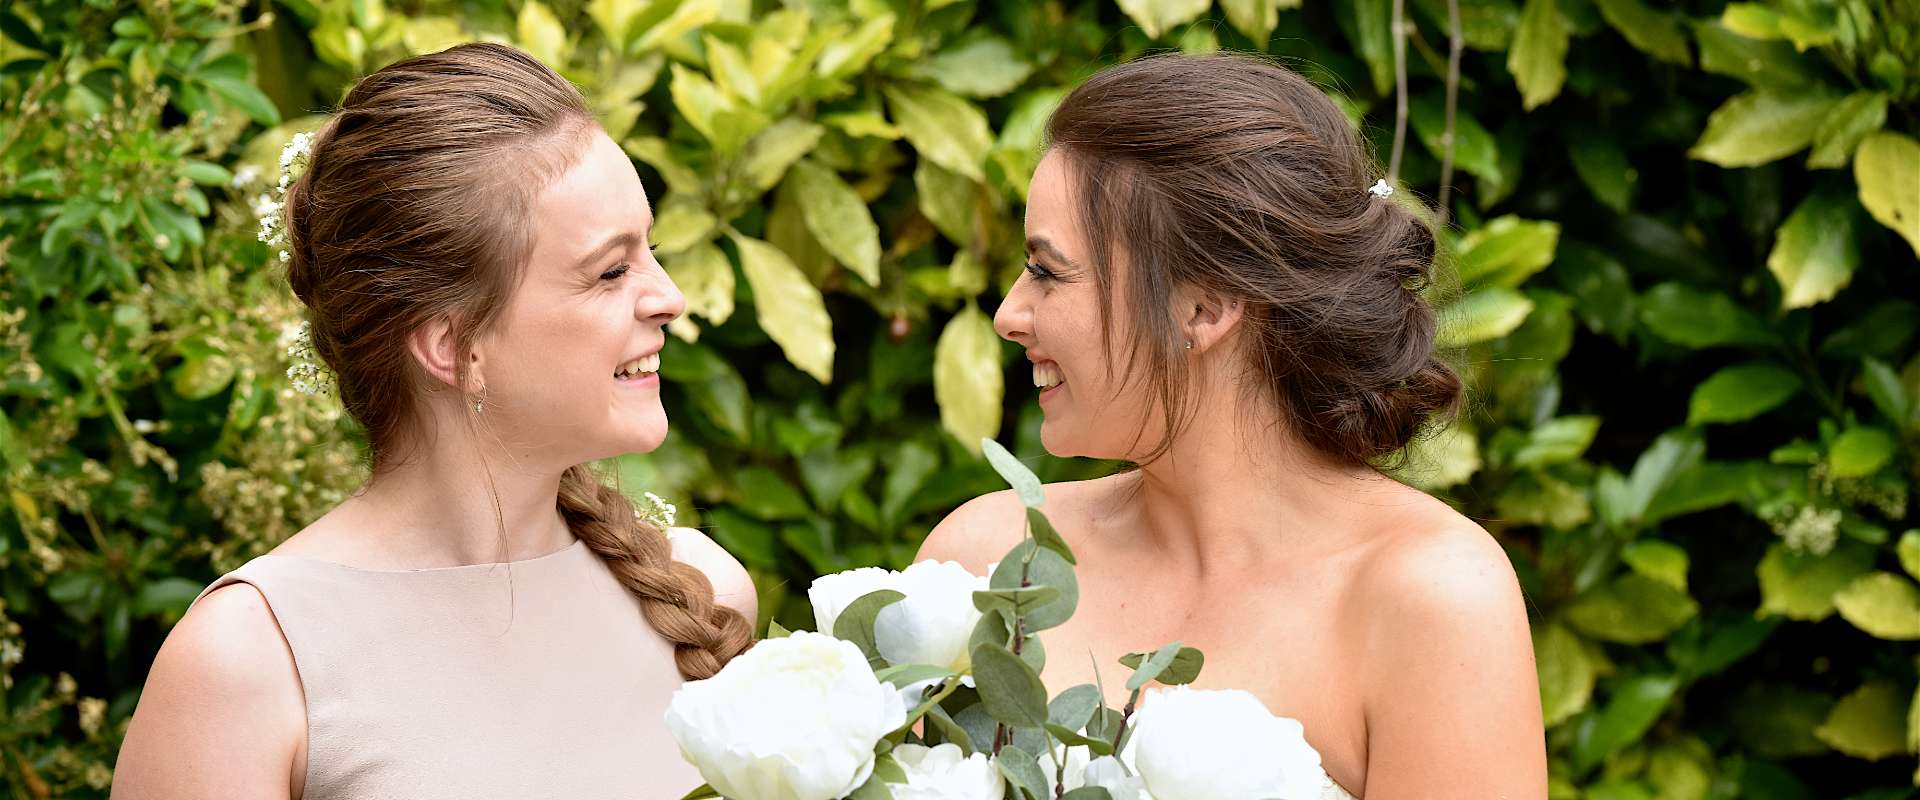 Bride and Bridesmaid smiling at each other